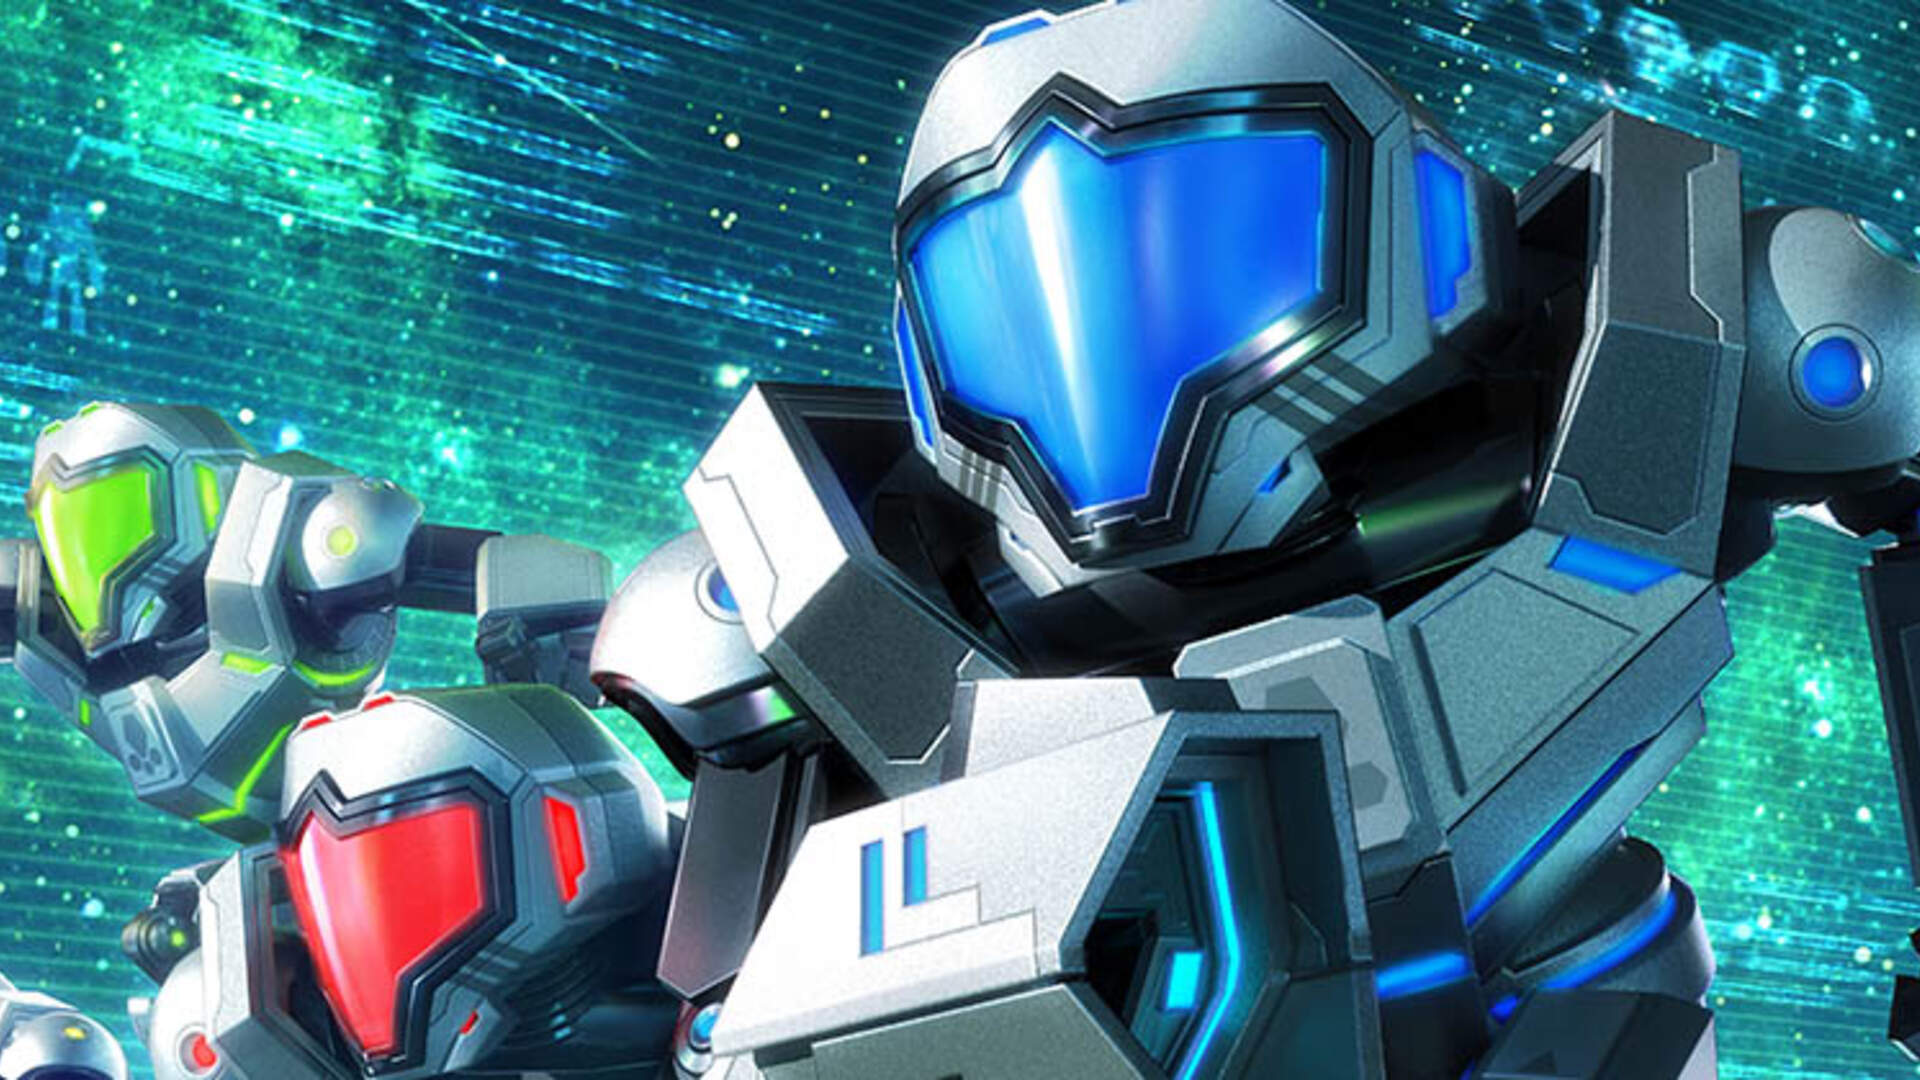 Metroid Prime: Federation Force Makes a Lousy First Impression, But It Gets Better